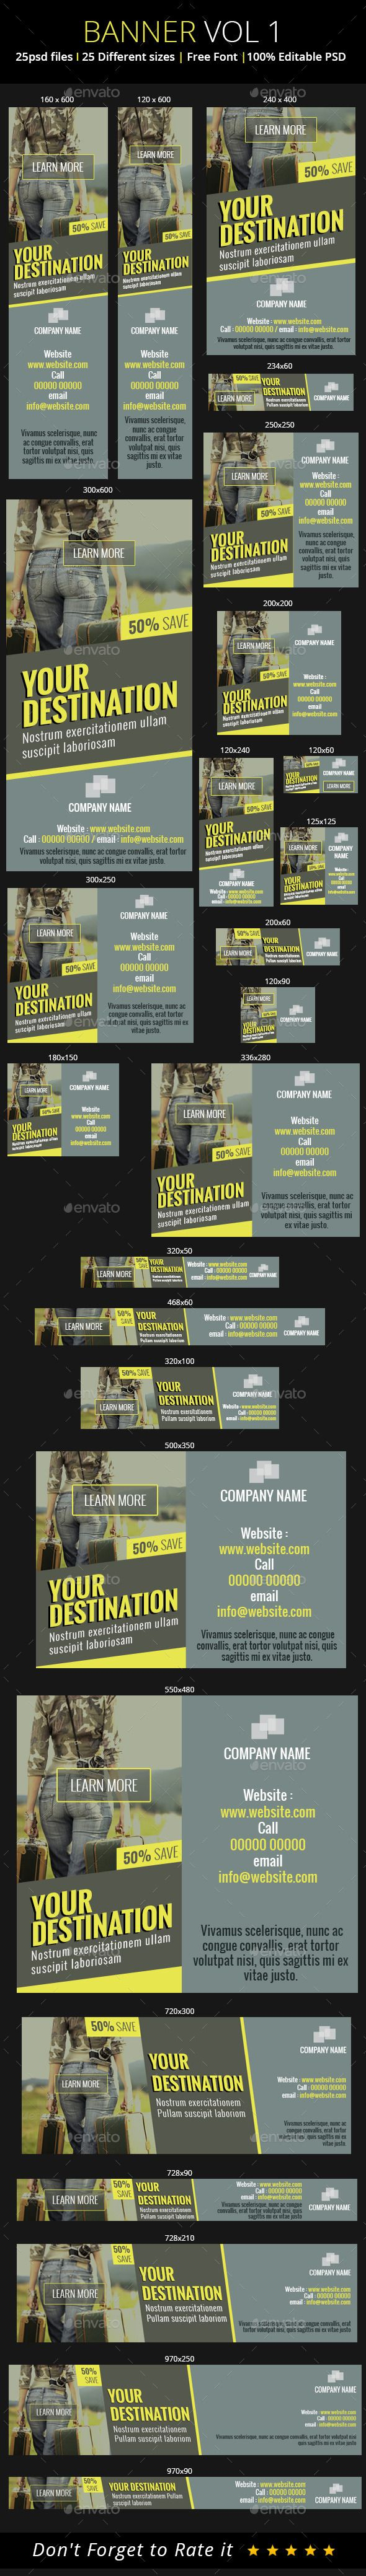 Tour & Travel Banners Template PSD | Buy and Download: http://graphicriver.net/item/tour-travel-banners/8982158?WT.ac=category_thumb&WT.z_author=mywonderlense&ref=ksioks